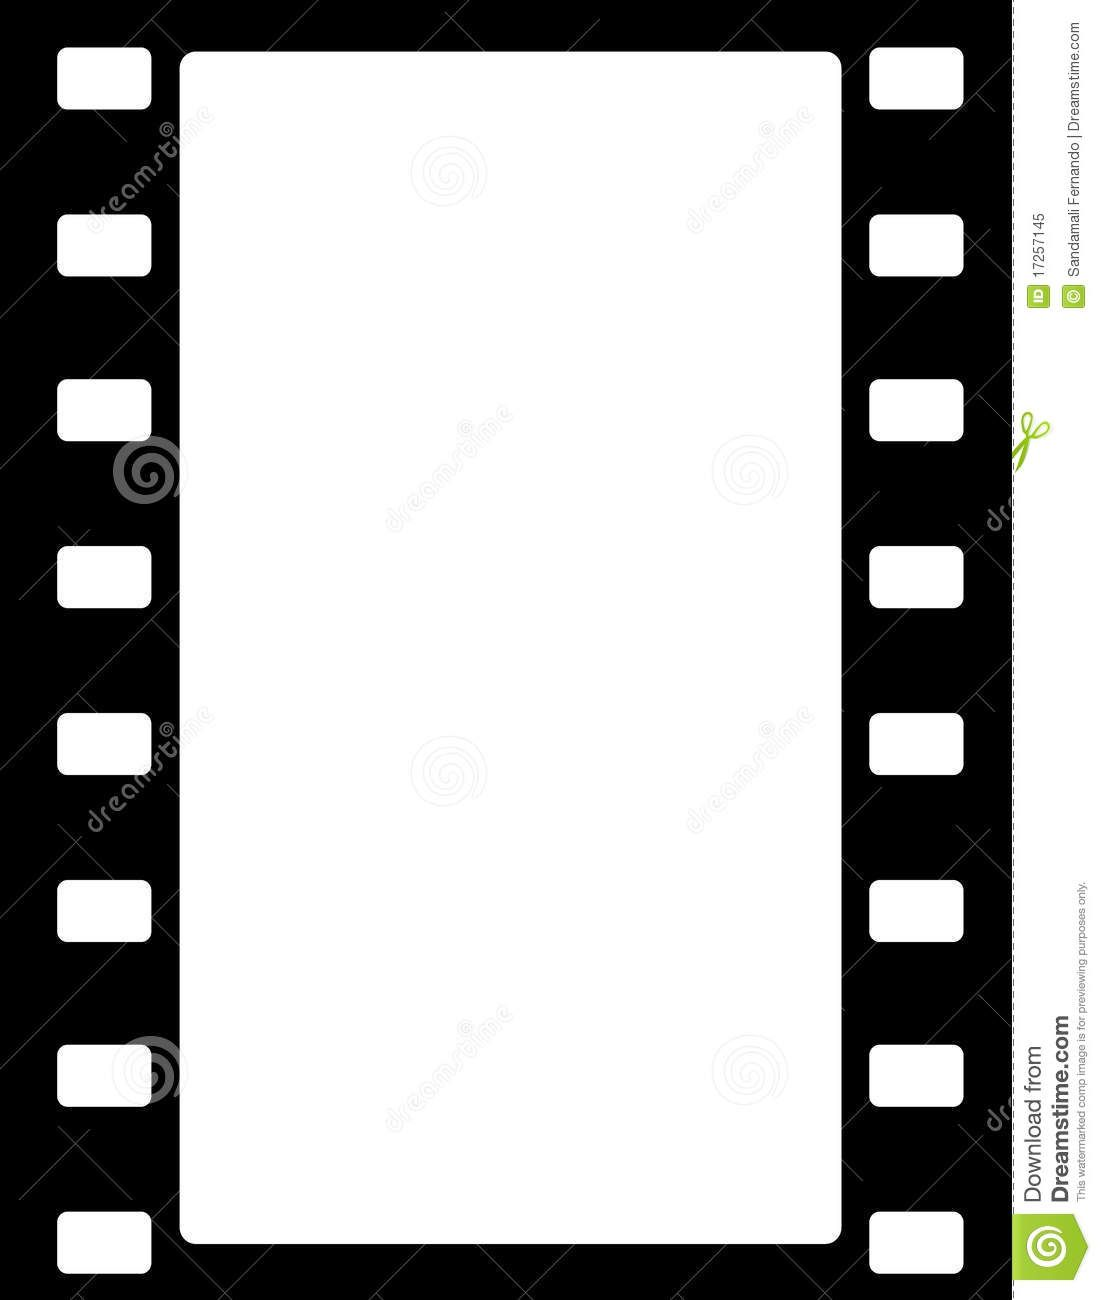 Movie film border clipart png royalty free Film Border Clipart | Free download best Film Border Clipart ... png royalty free